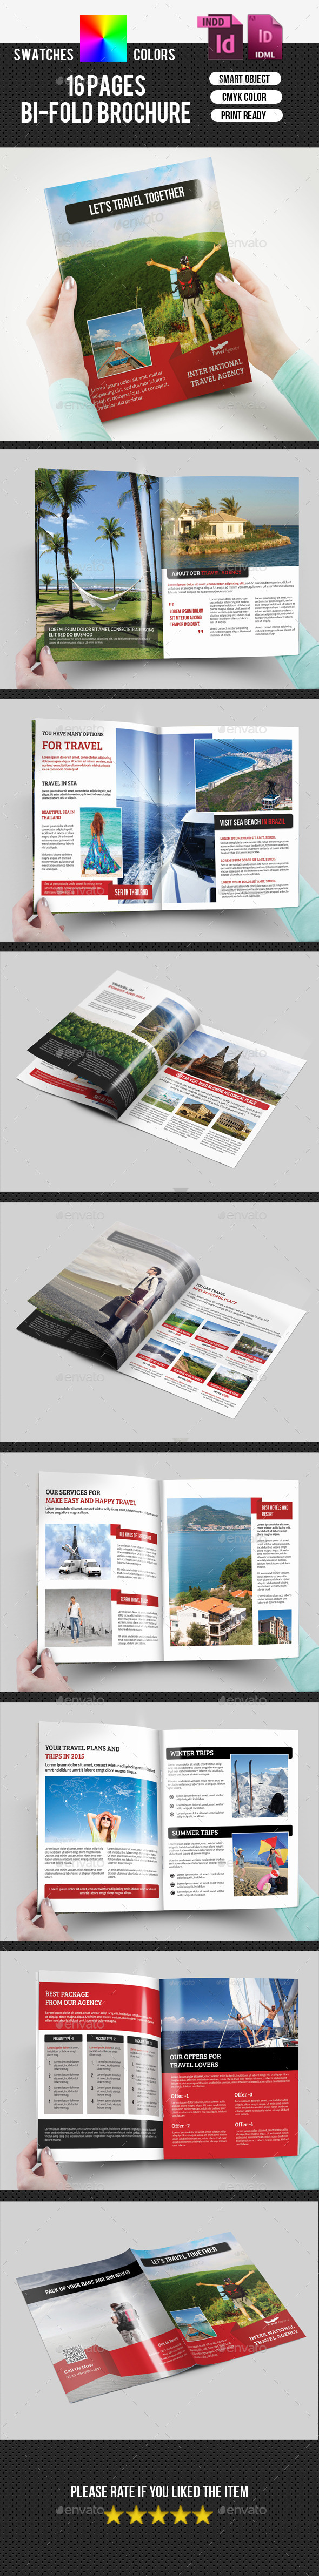 Travel Agency Bifold Brochure-V166 - Corporate Brochures